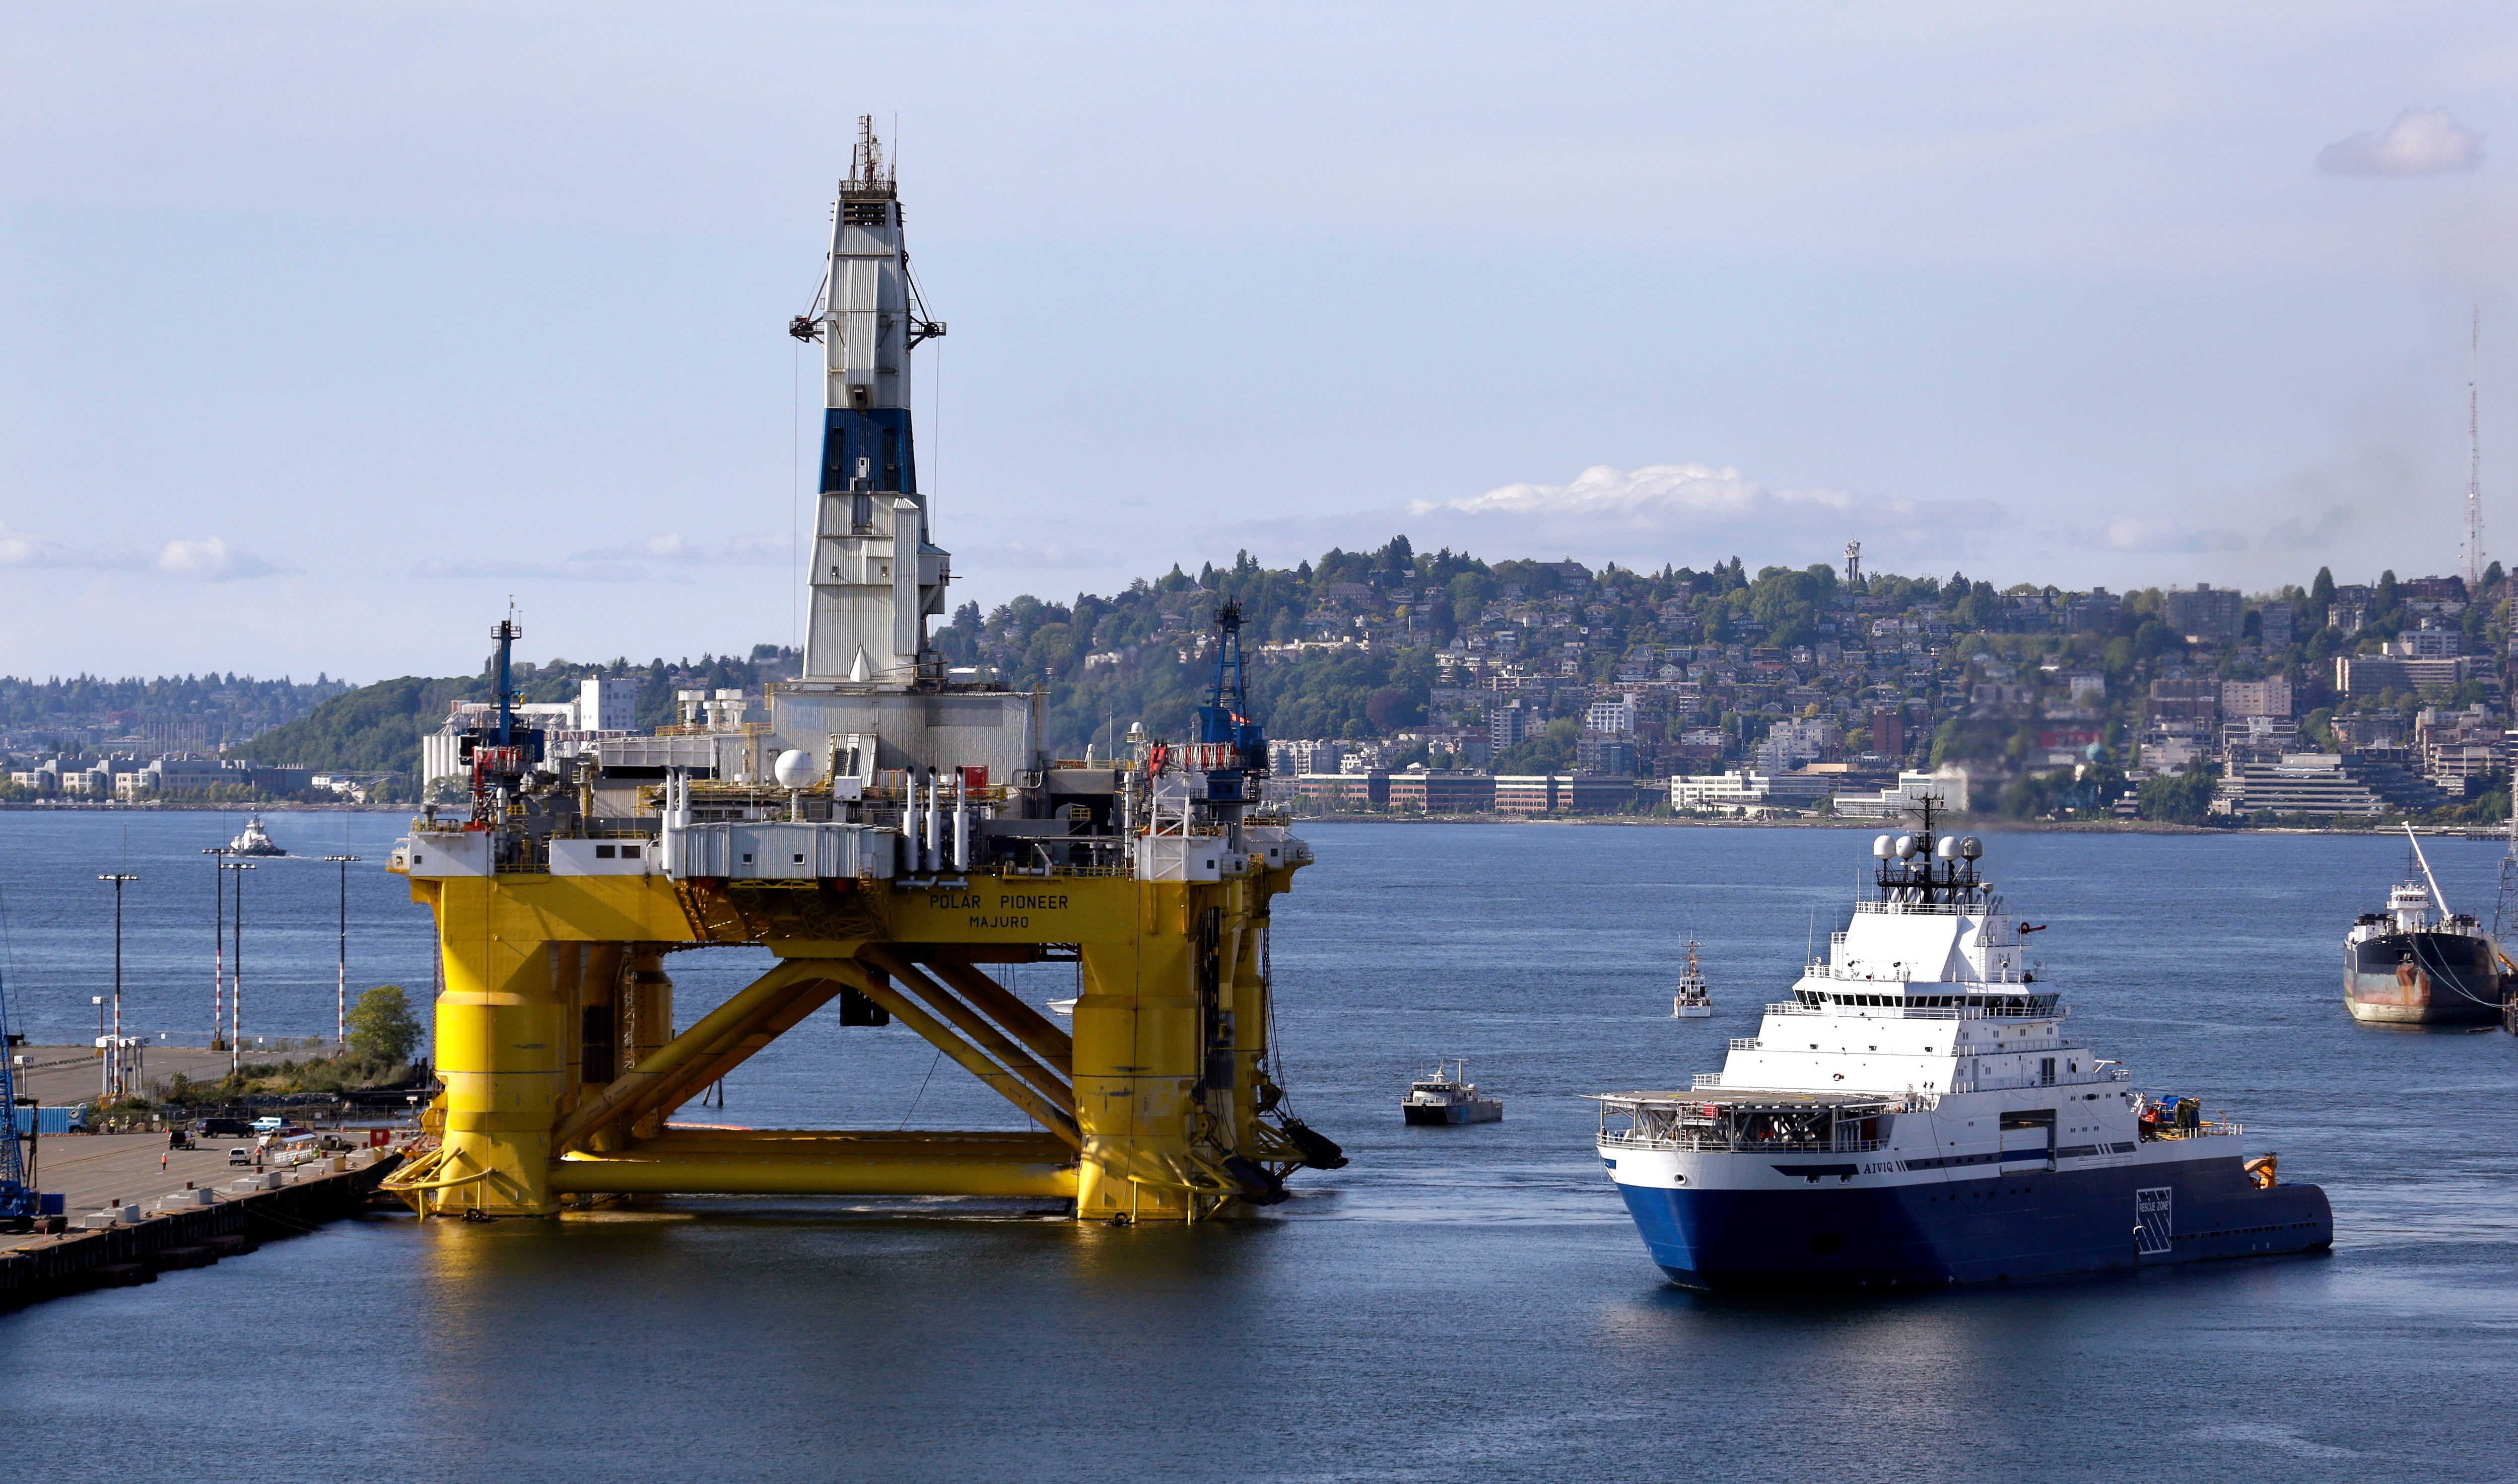 Obama Cracks Down on Offshore Oil Drilling